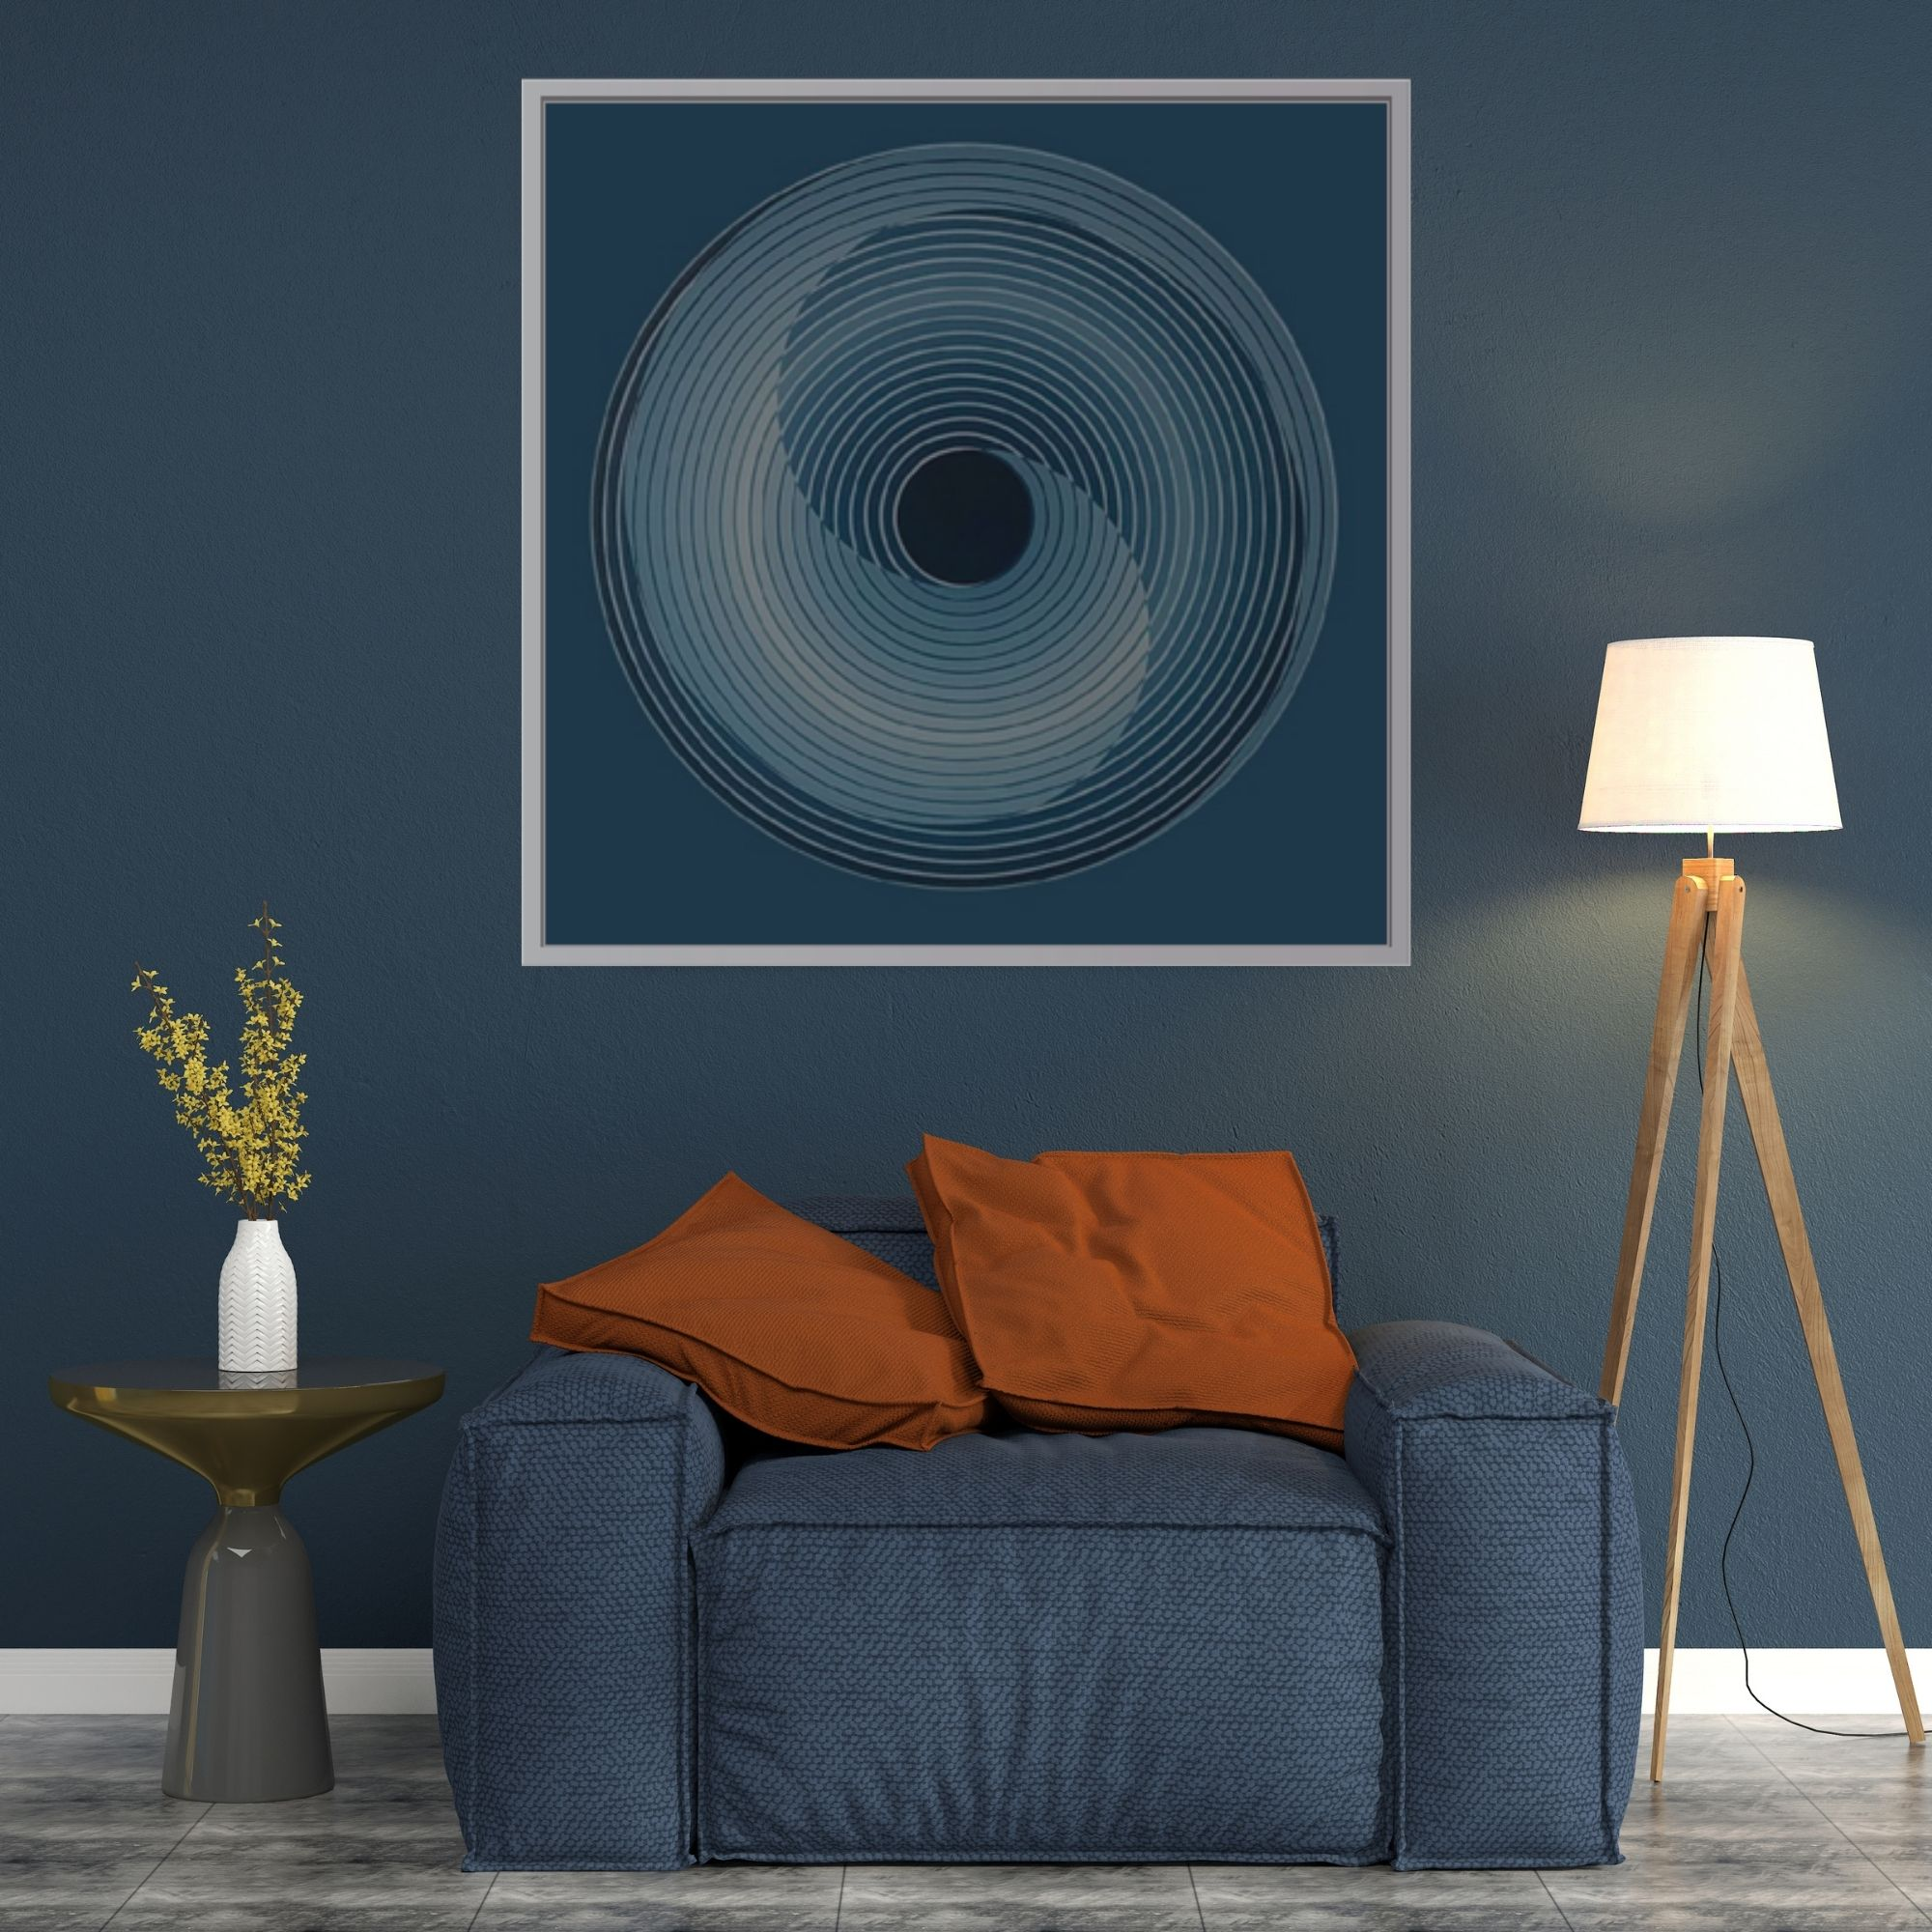 Circle Of Life (Vol 20)_Acrylic on Canvas_33x33 inches